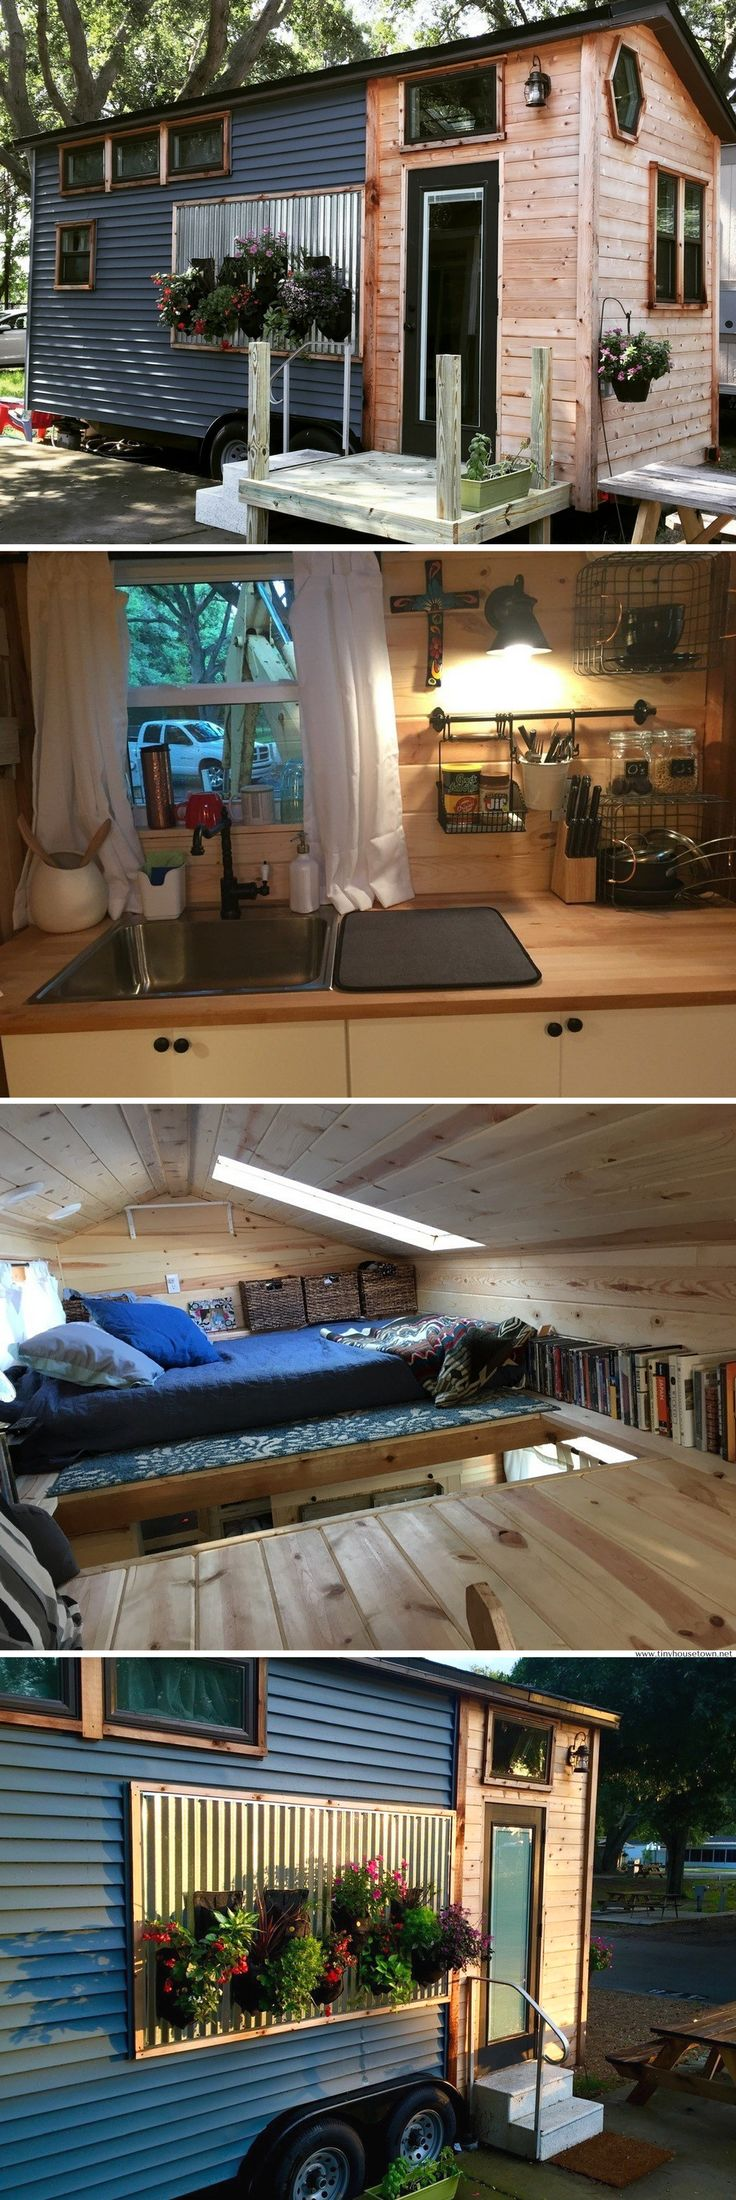 A 210 sq ft tiny house, featured on Tiny House Hunters, and now available for sale in Florida.